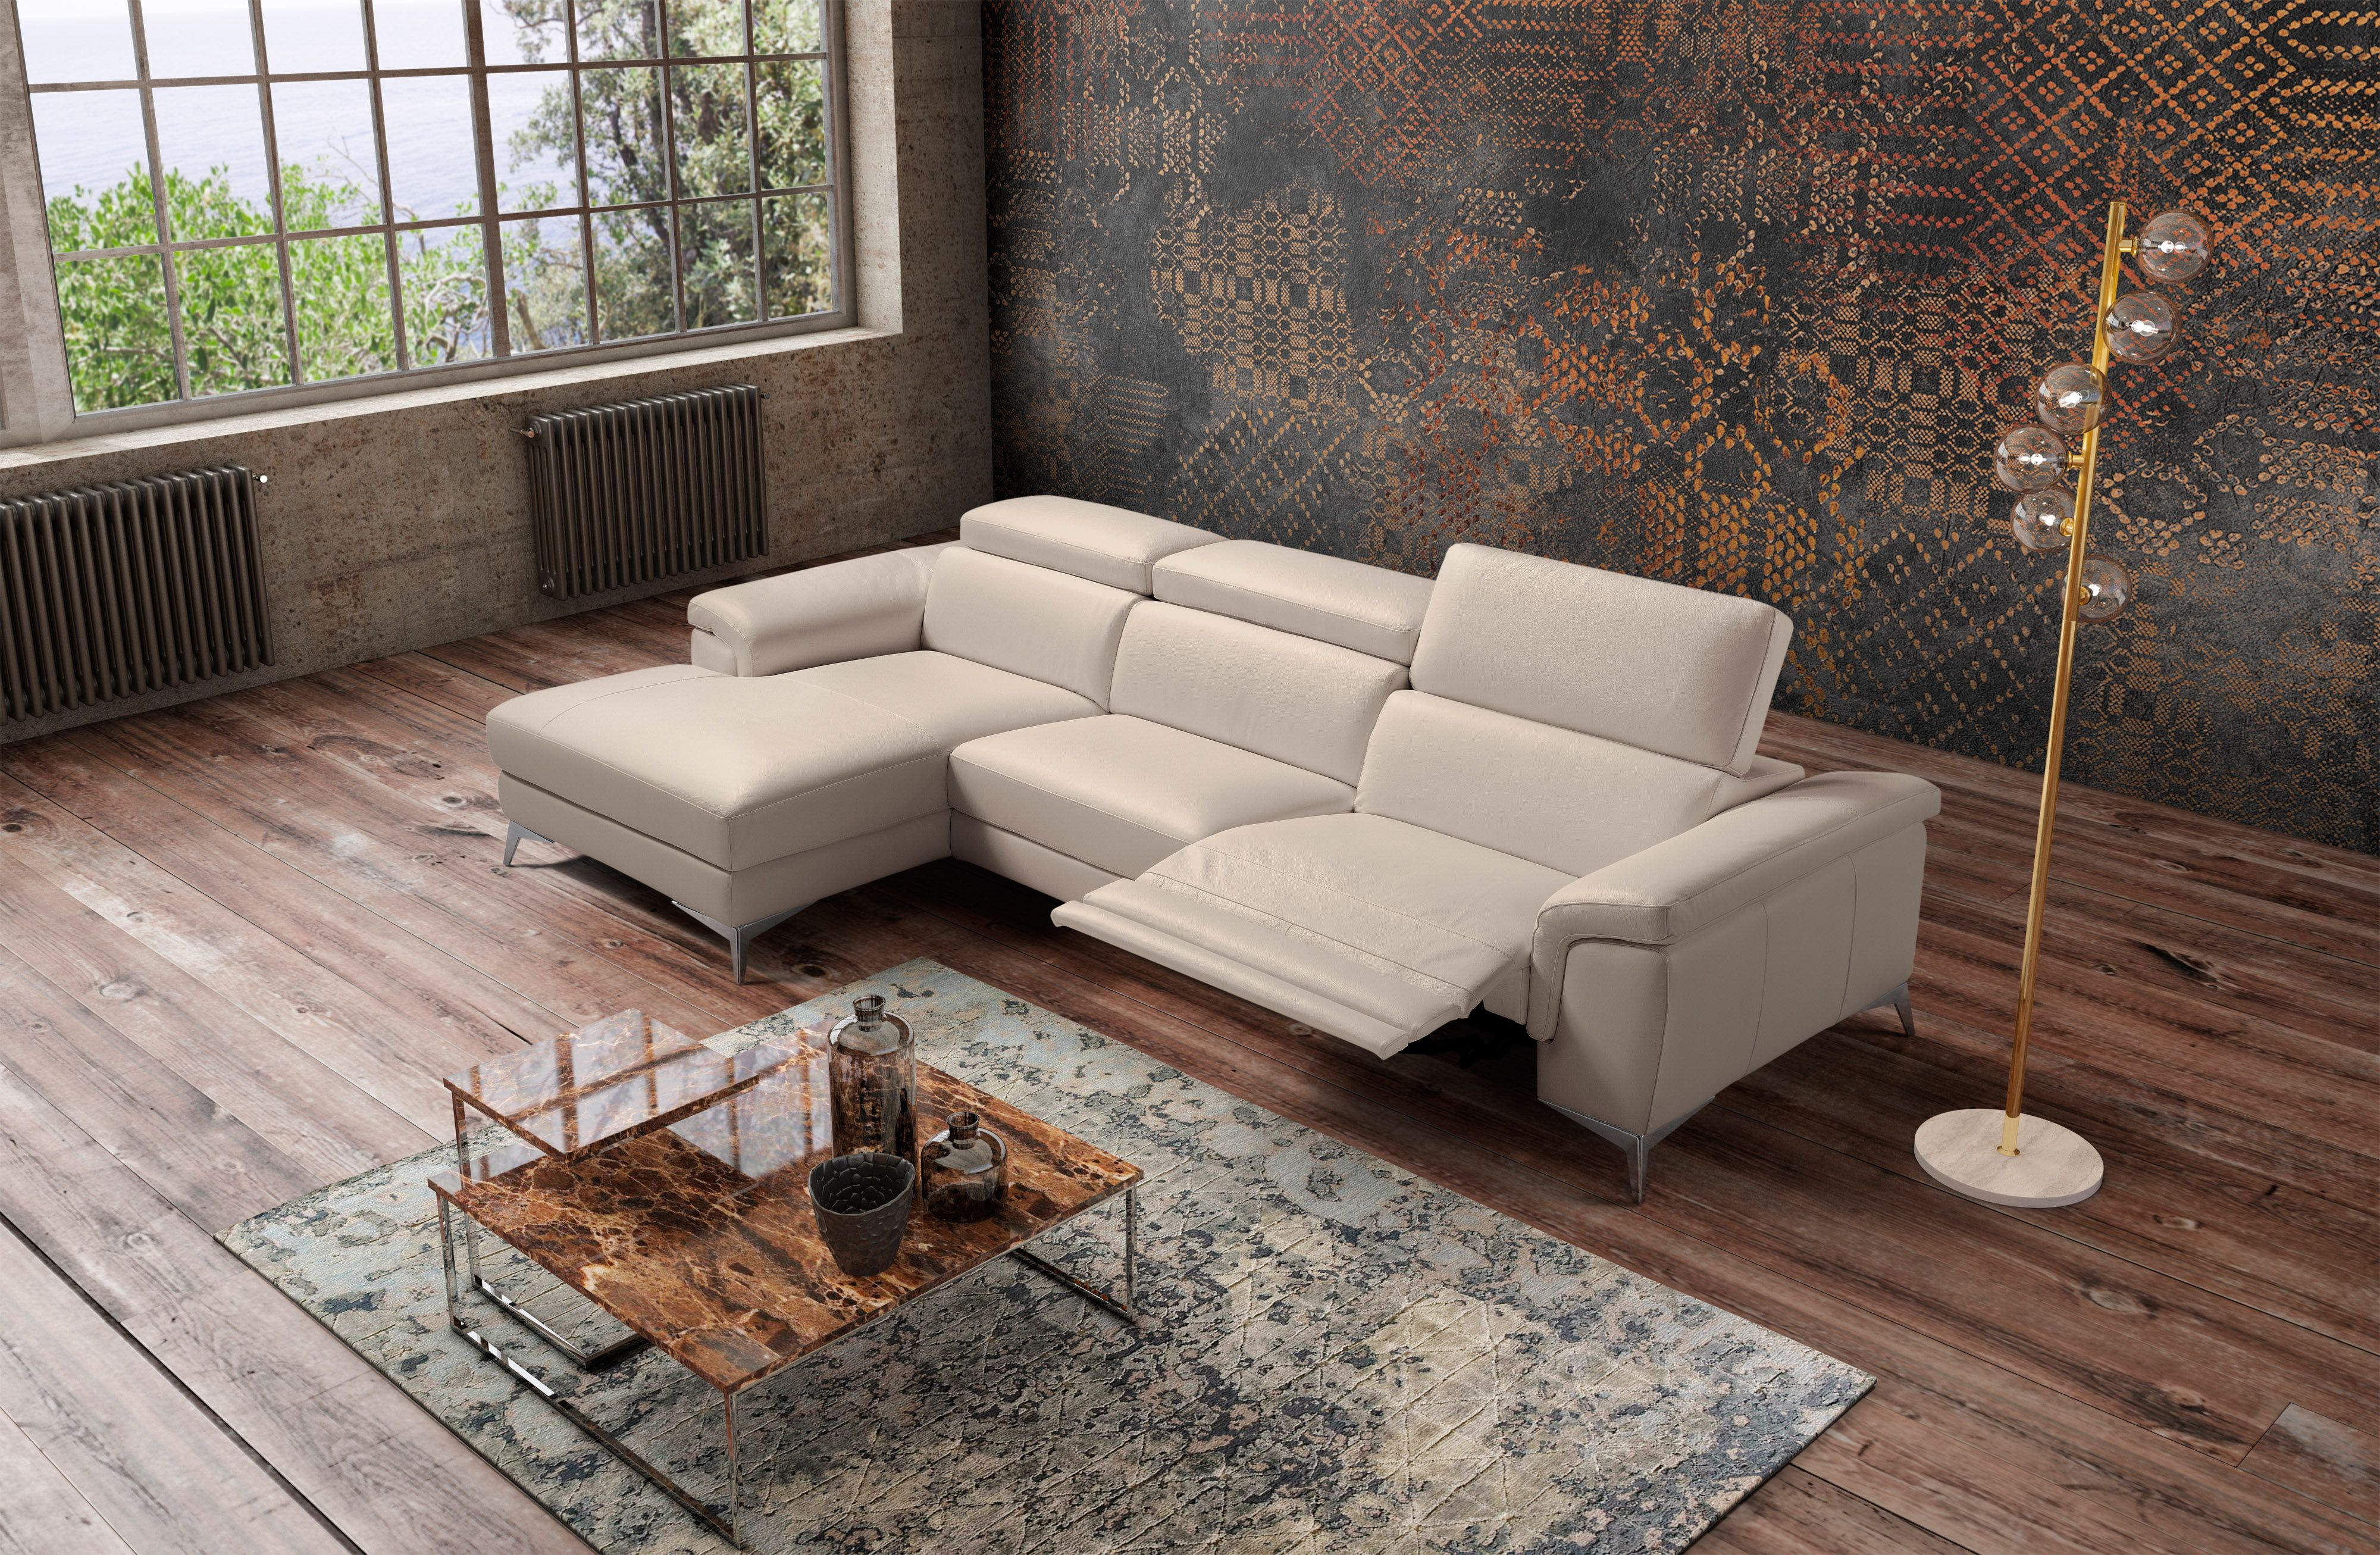 Stylish All Real Leather Sectional Italian Leather Furniture Italian Furniture Modern Contemporary Sectional Sofa